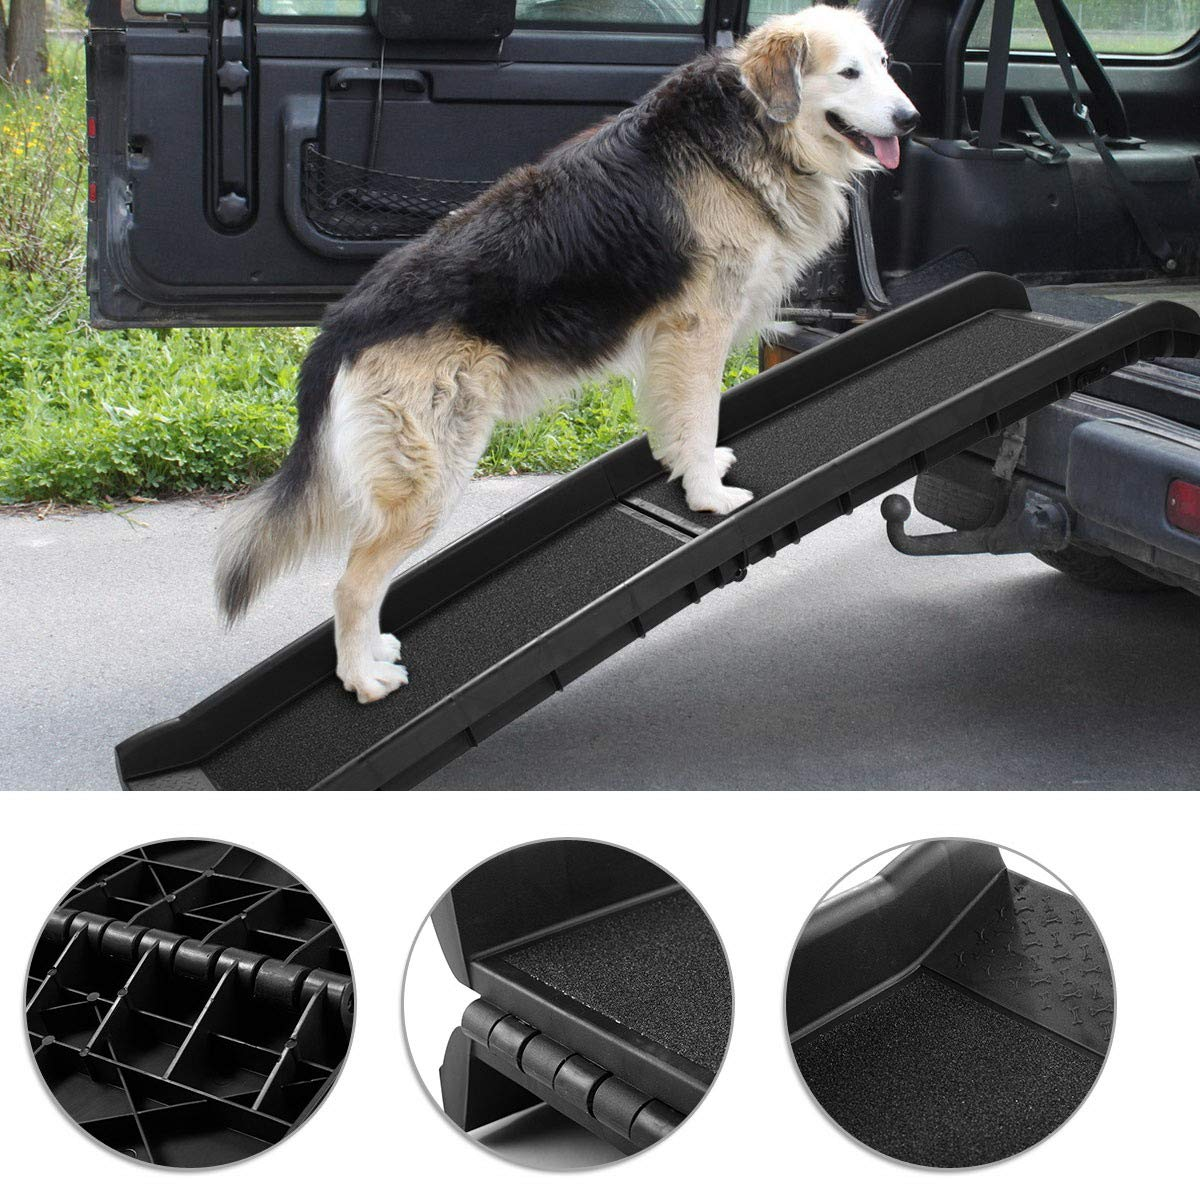 TOBBI 62 Bi-fold Portable Dog Ramp for Large Pet Folding Trunk Back Seat Ladder Step Car SUV 62